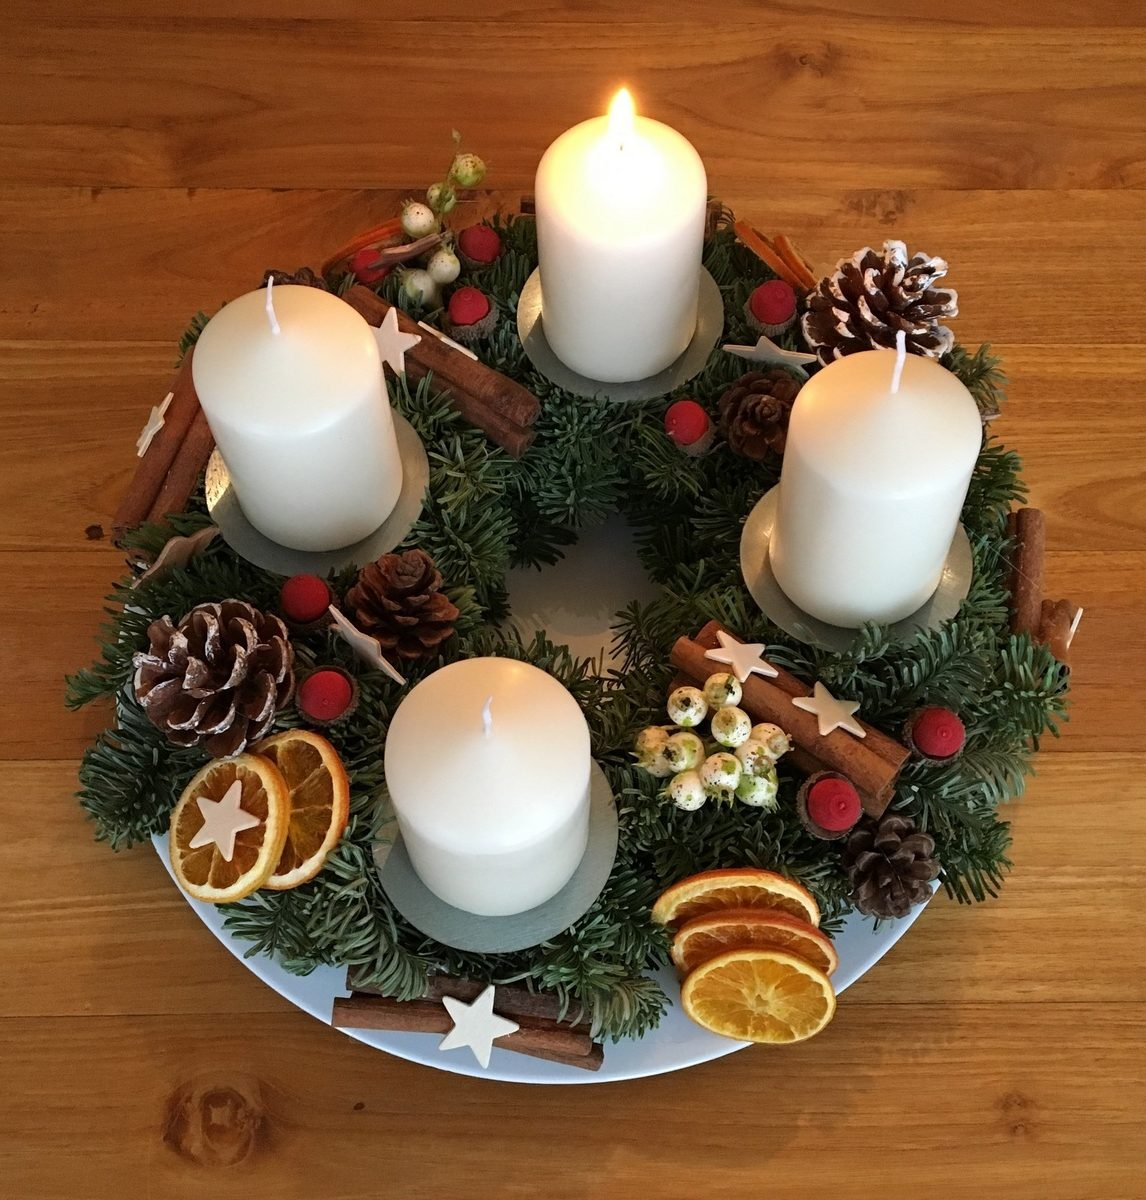 Adventkranz für 1. Advent zünden